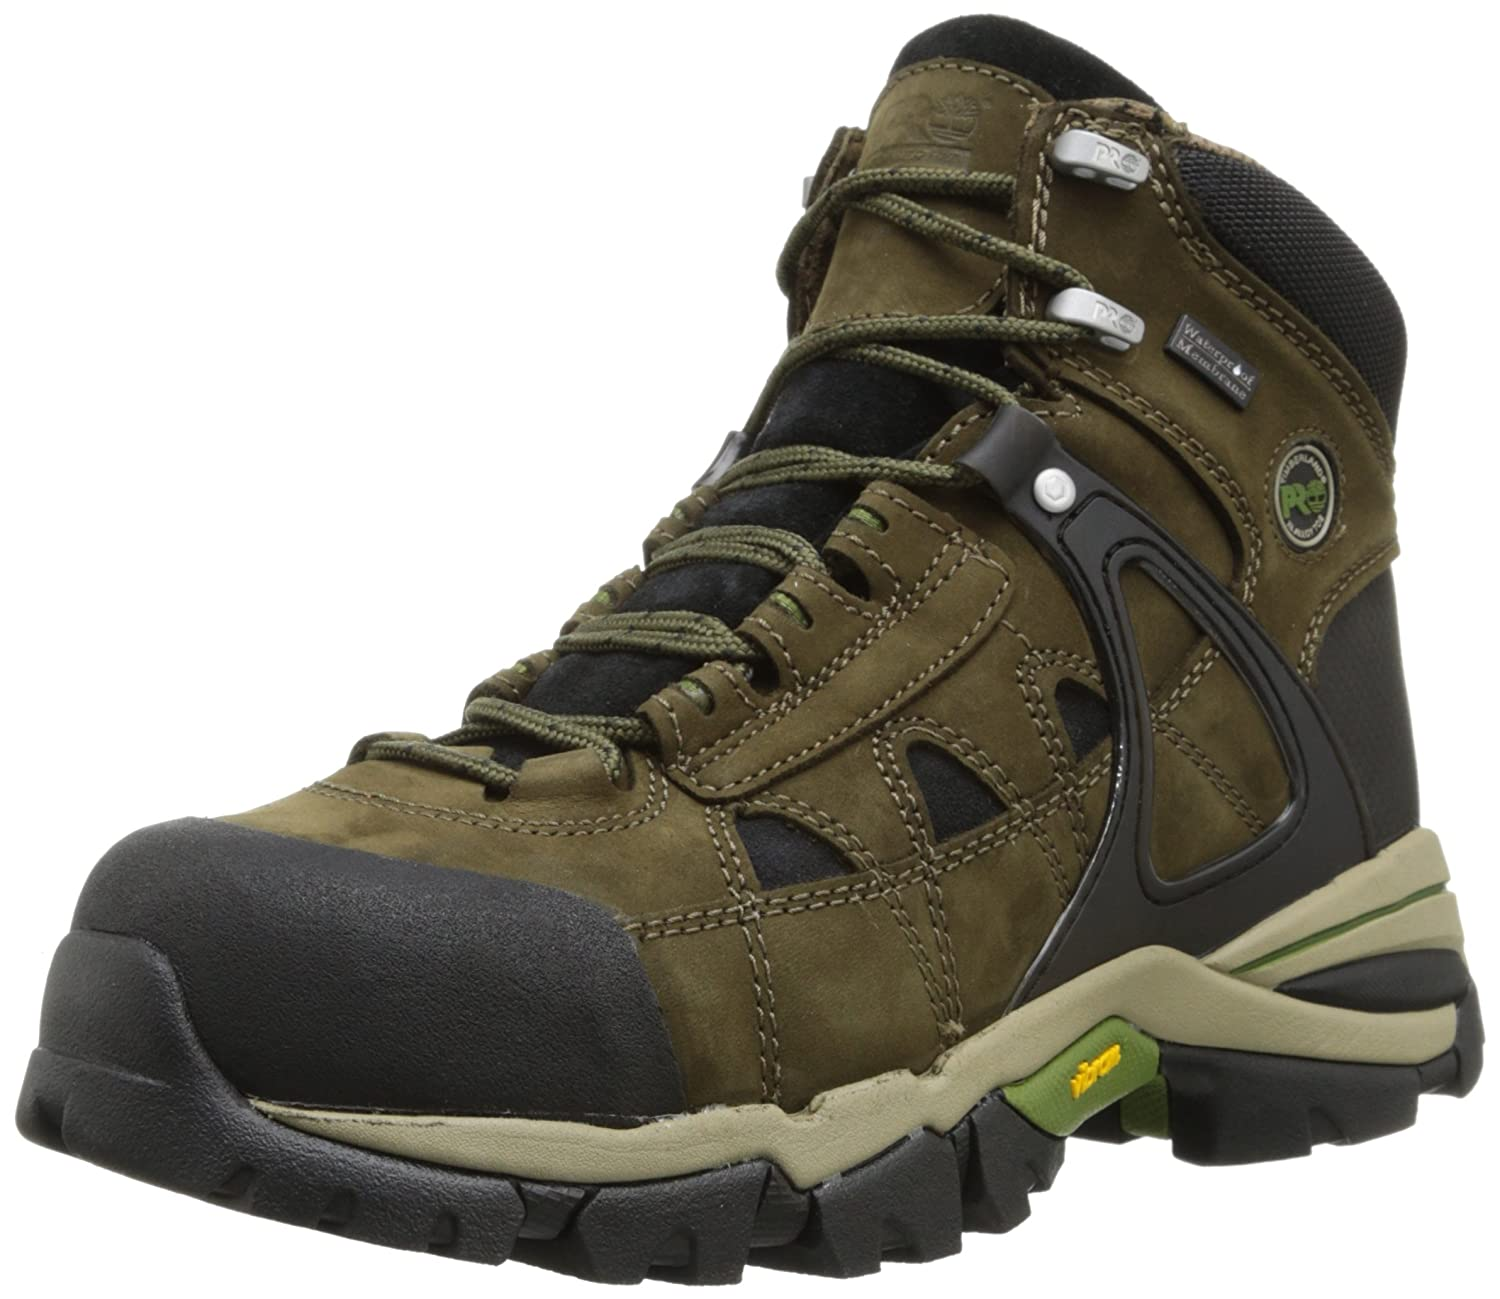 3921817c10e Amazon.com: Timberland PRO Men's Hyperion Waterproof Safety-Toe Work ...